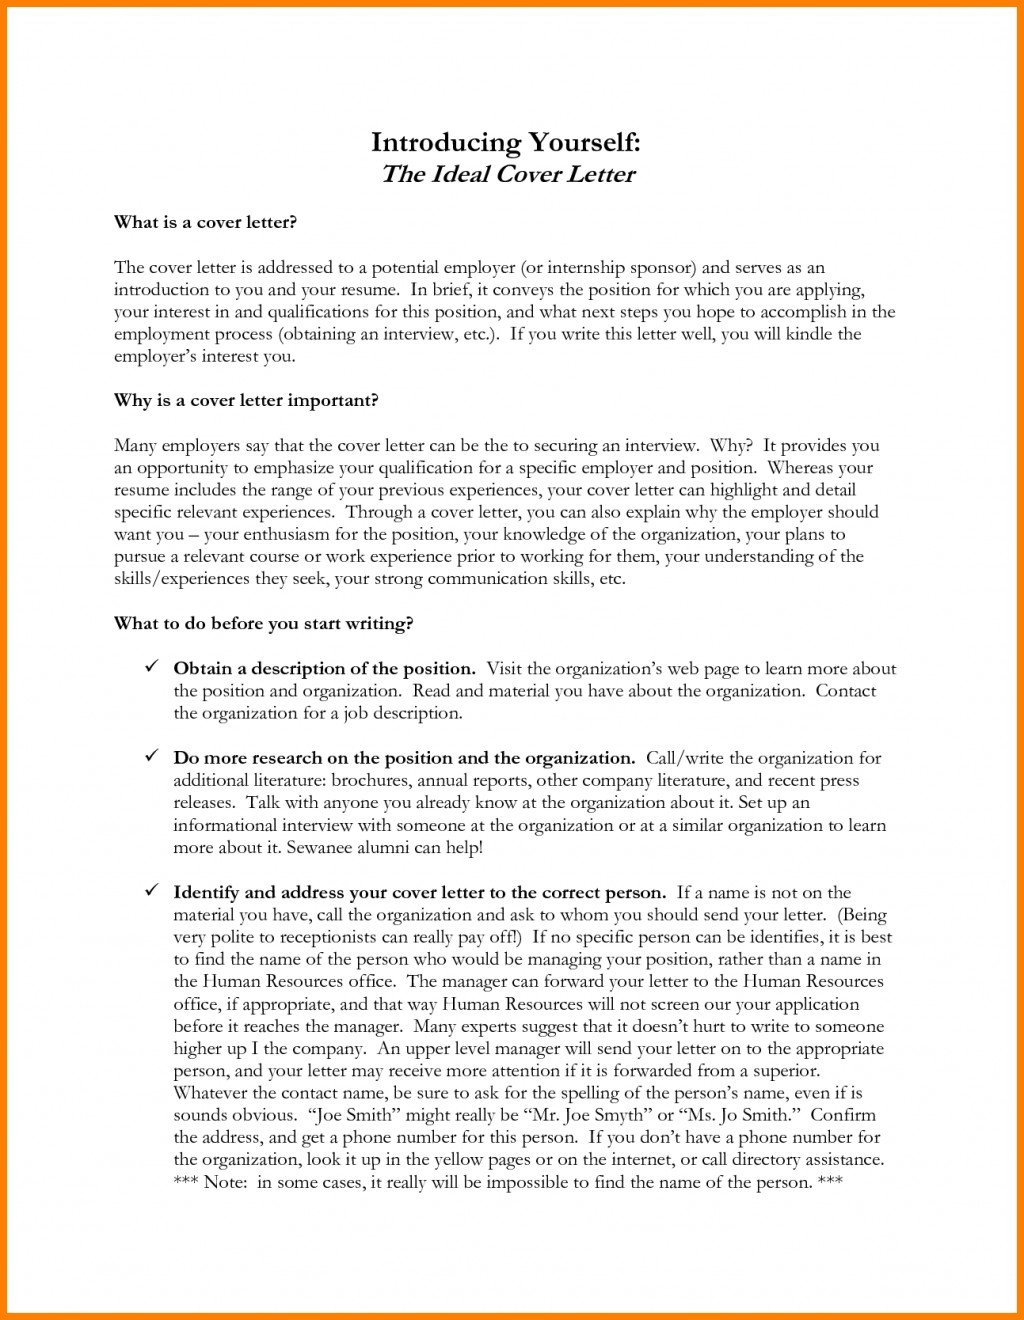 008 Essay Example 9913528656 Custom Essays Online To Remarkable Read Free Best Large